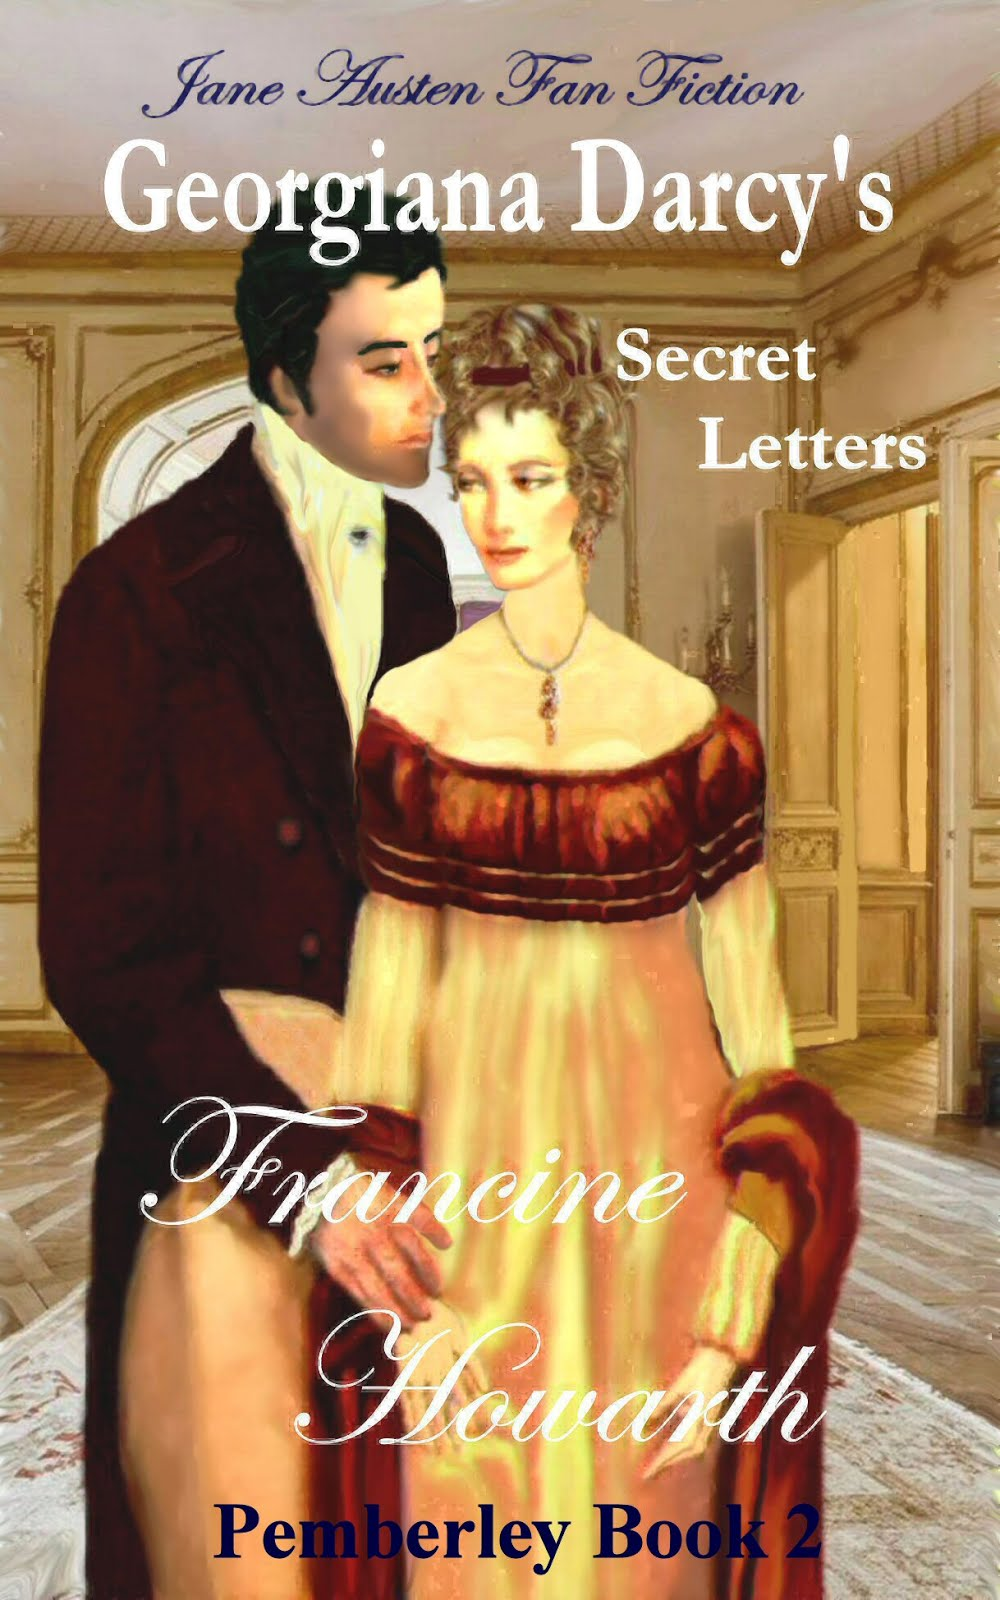 NEW RELEASE Pemberley book 2